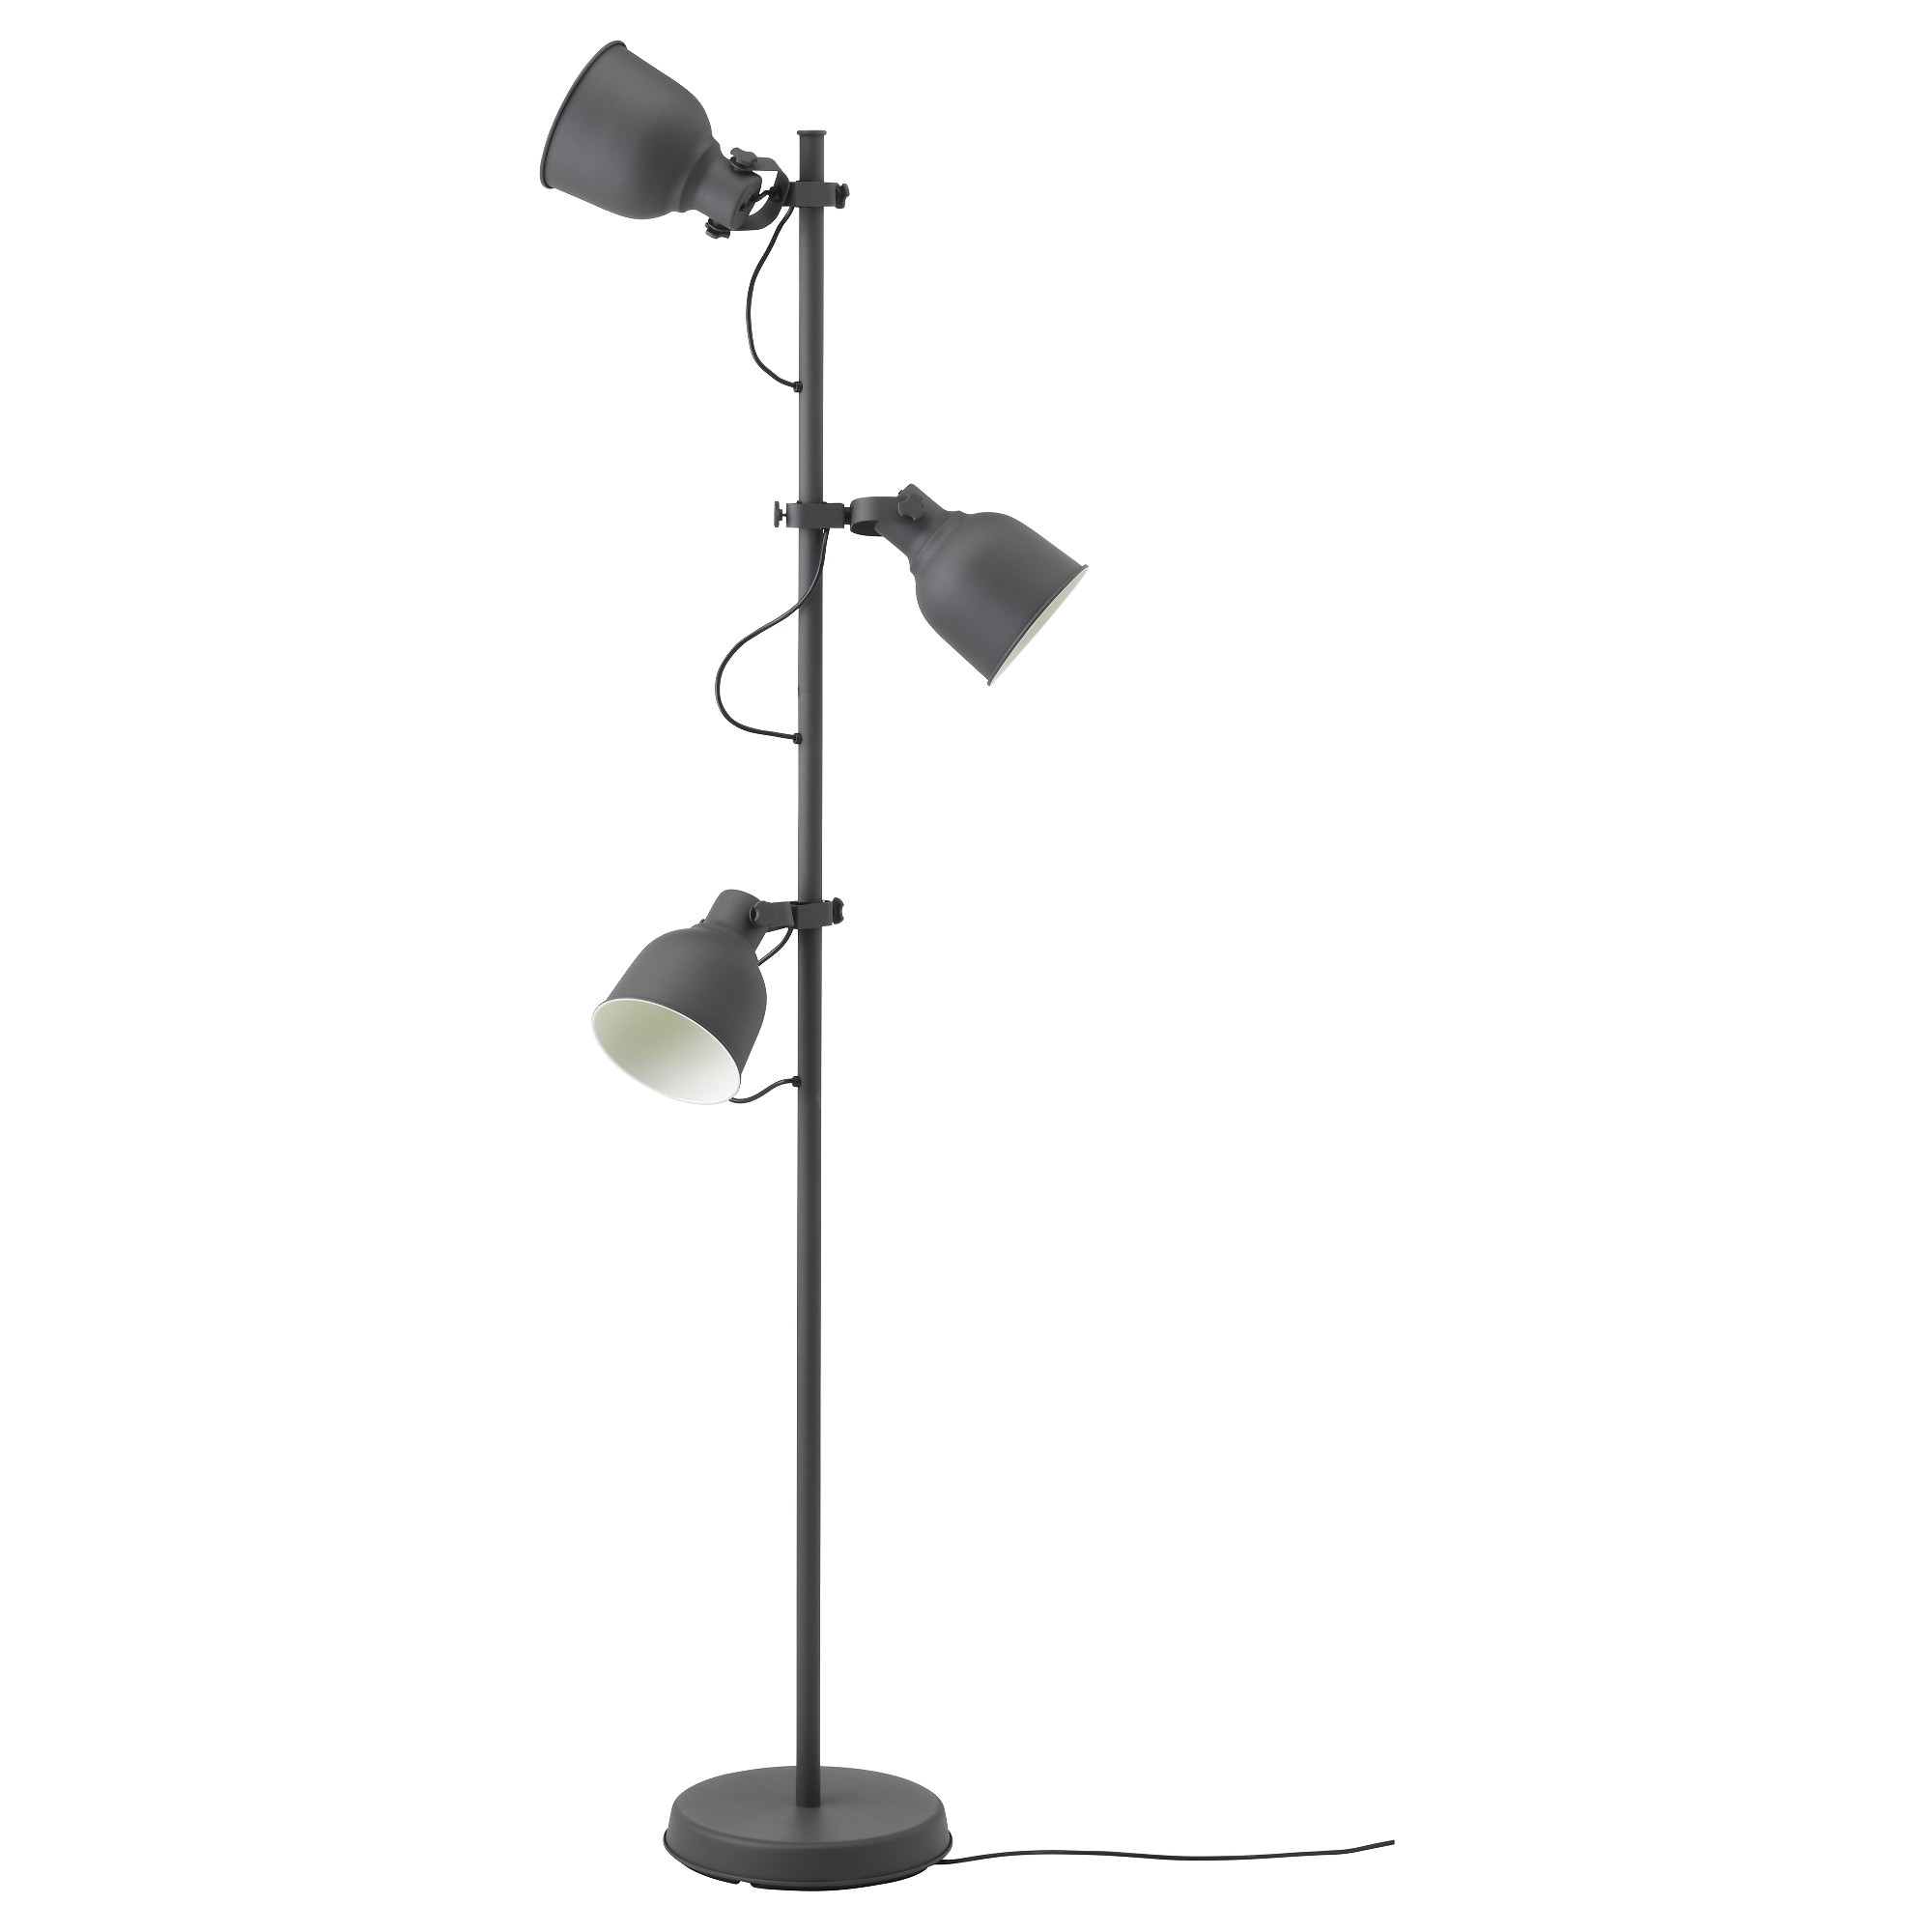 floor lamps  modern  contemporary floor lamps  ikea - hektar floor lamp with spotlights dark gray max  w height